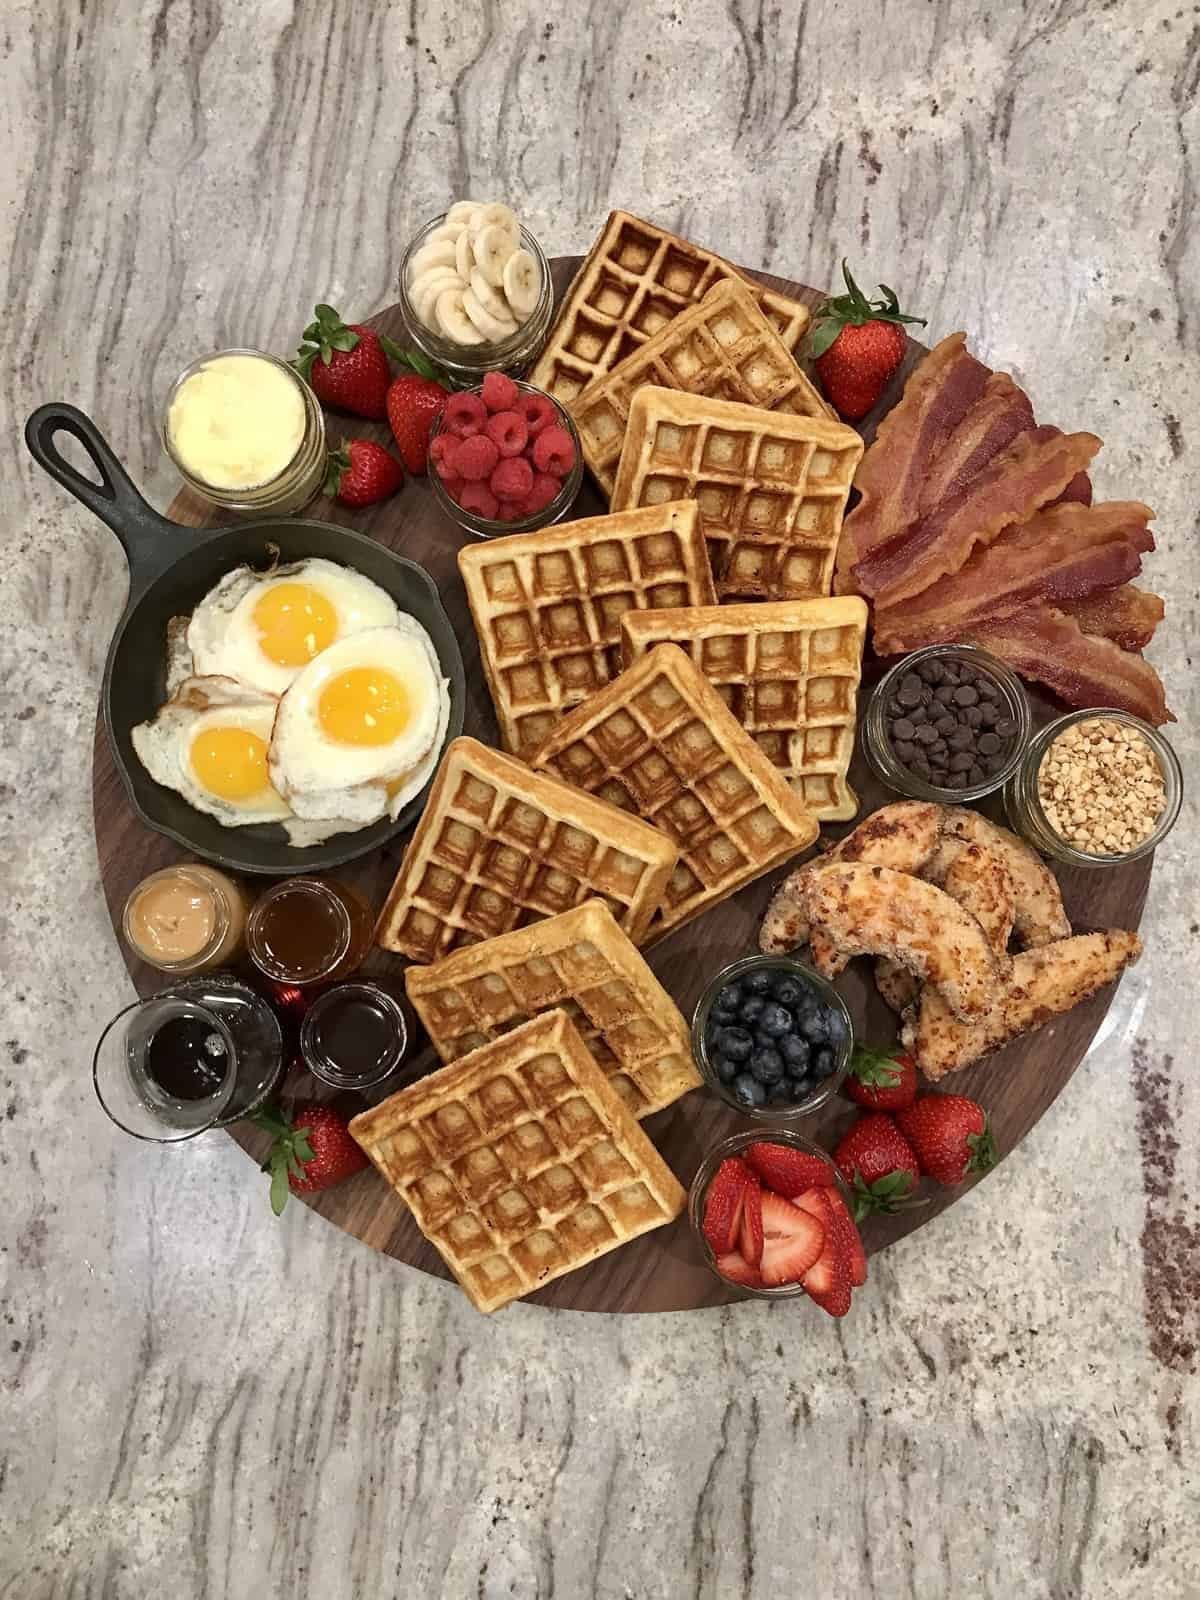 Chicken and Waffles Board by The BakerMama